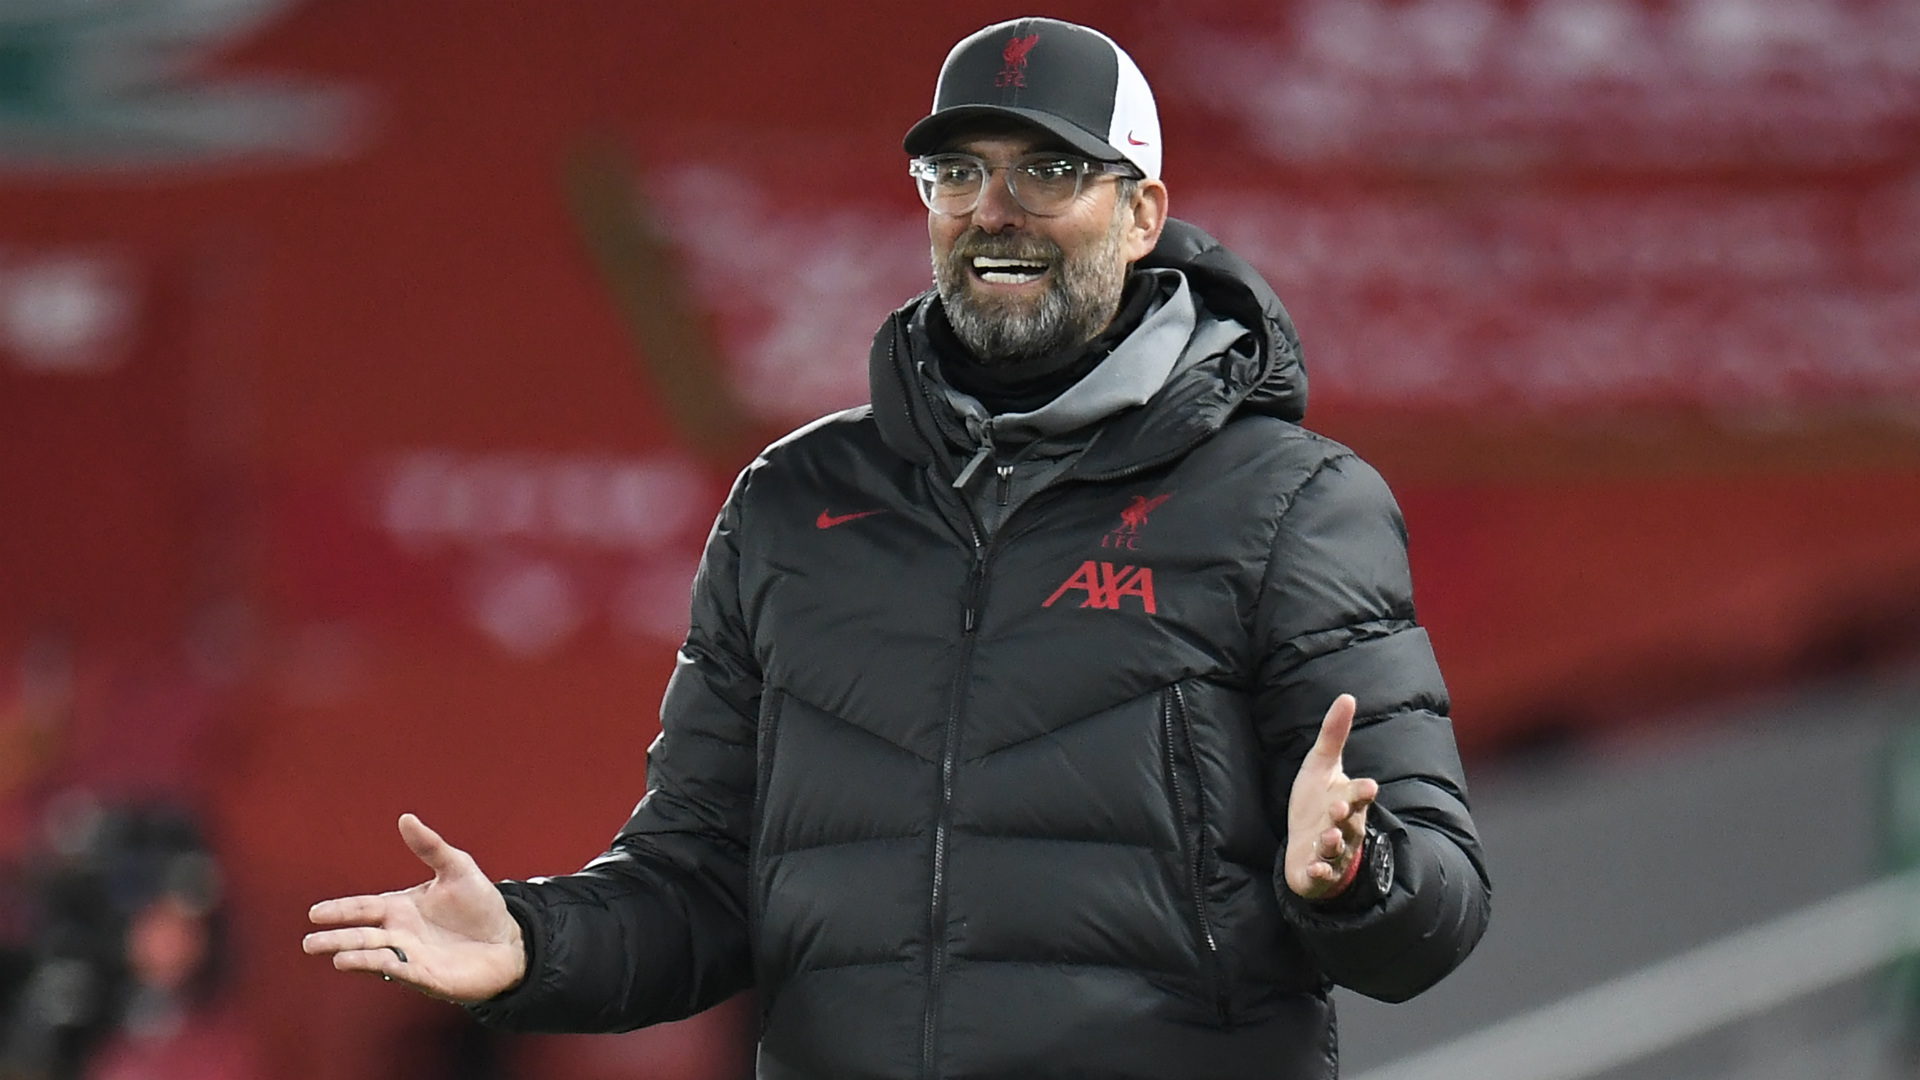 Klopp: The Premier League is too challenging to dominate